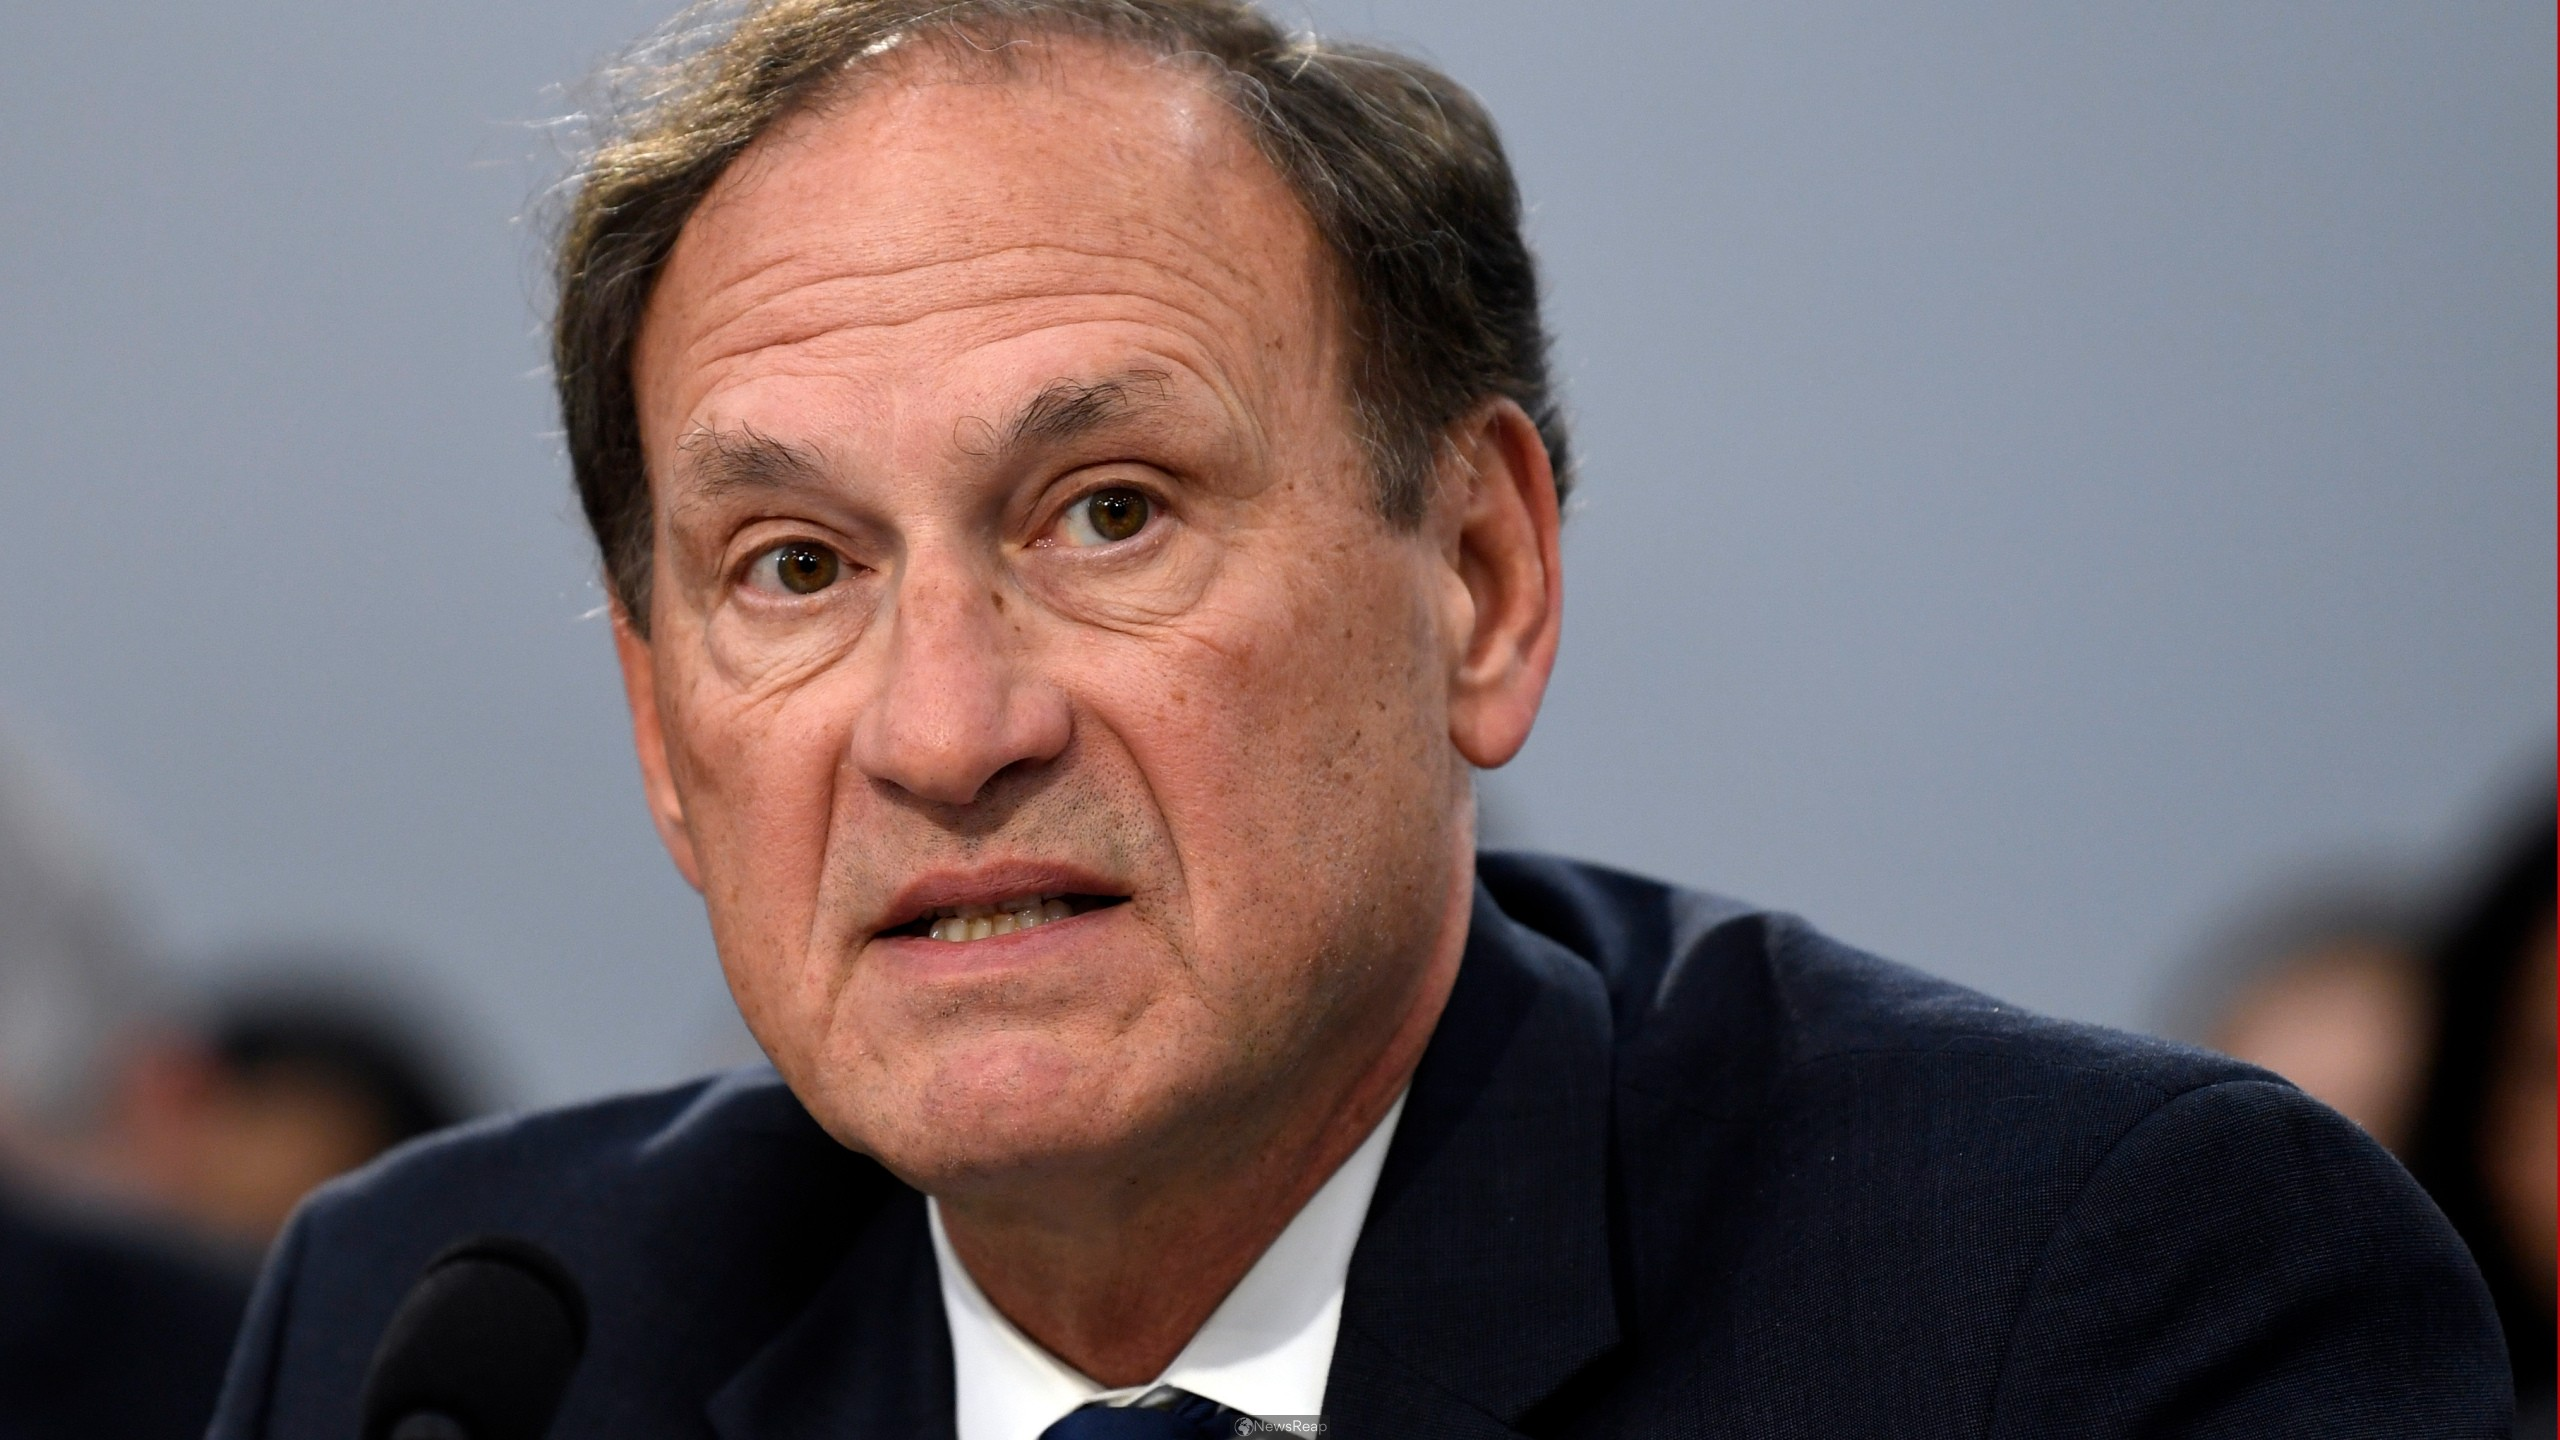 U.S. Justice Alito says pandemic has led to unimaginable curbs on liberty